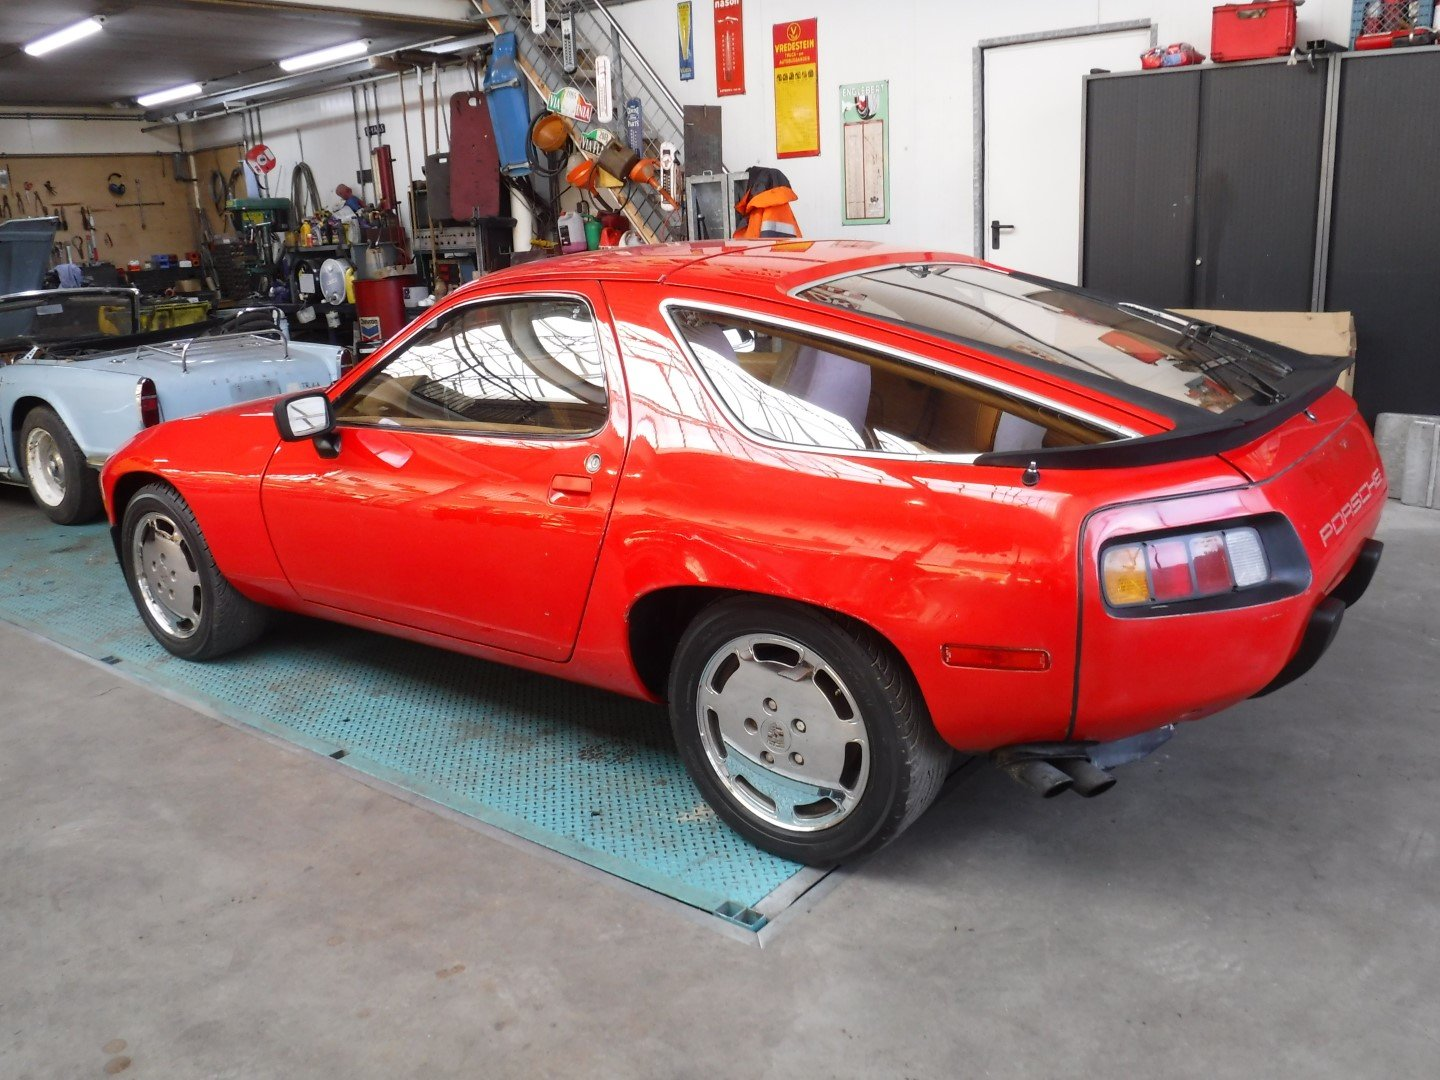 Porsche 928  1979  8 cyl.  4.5L For Sale (picture 6 of 6)